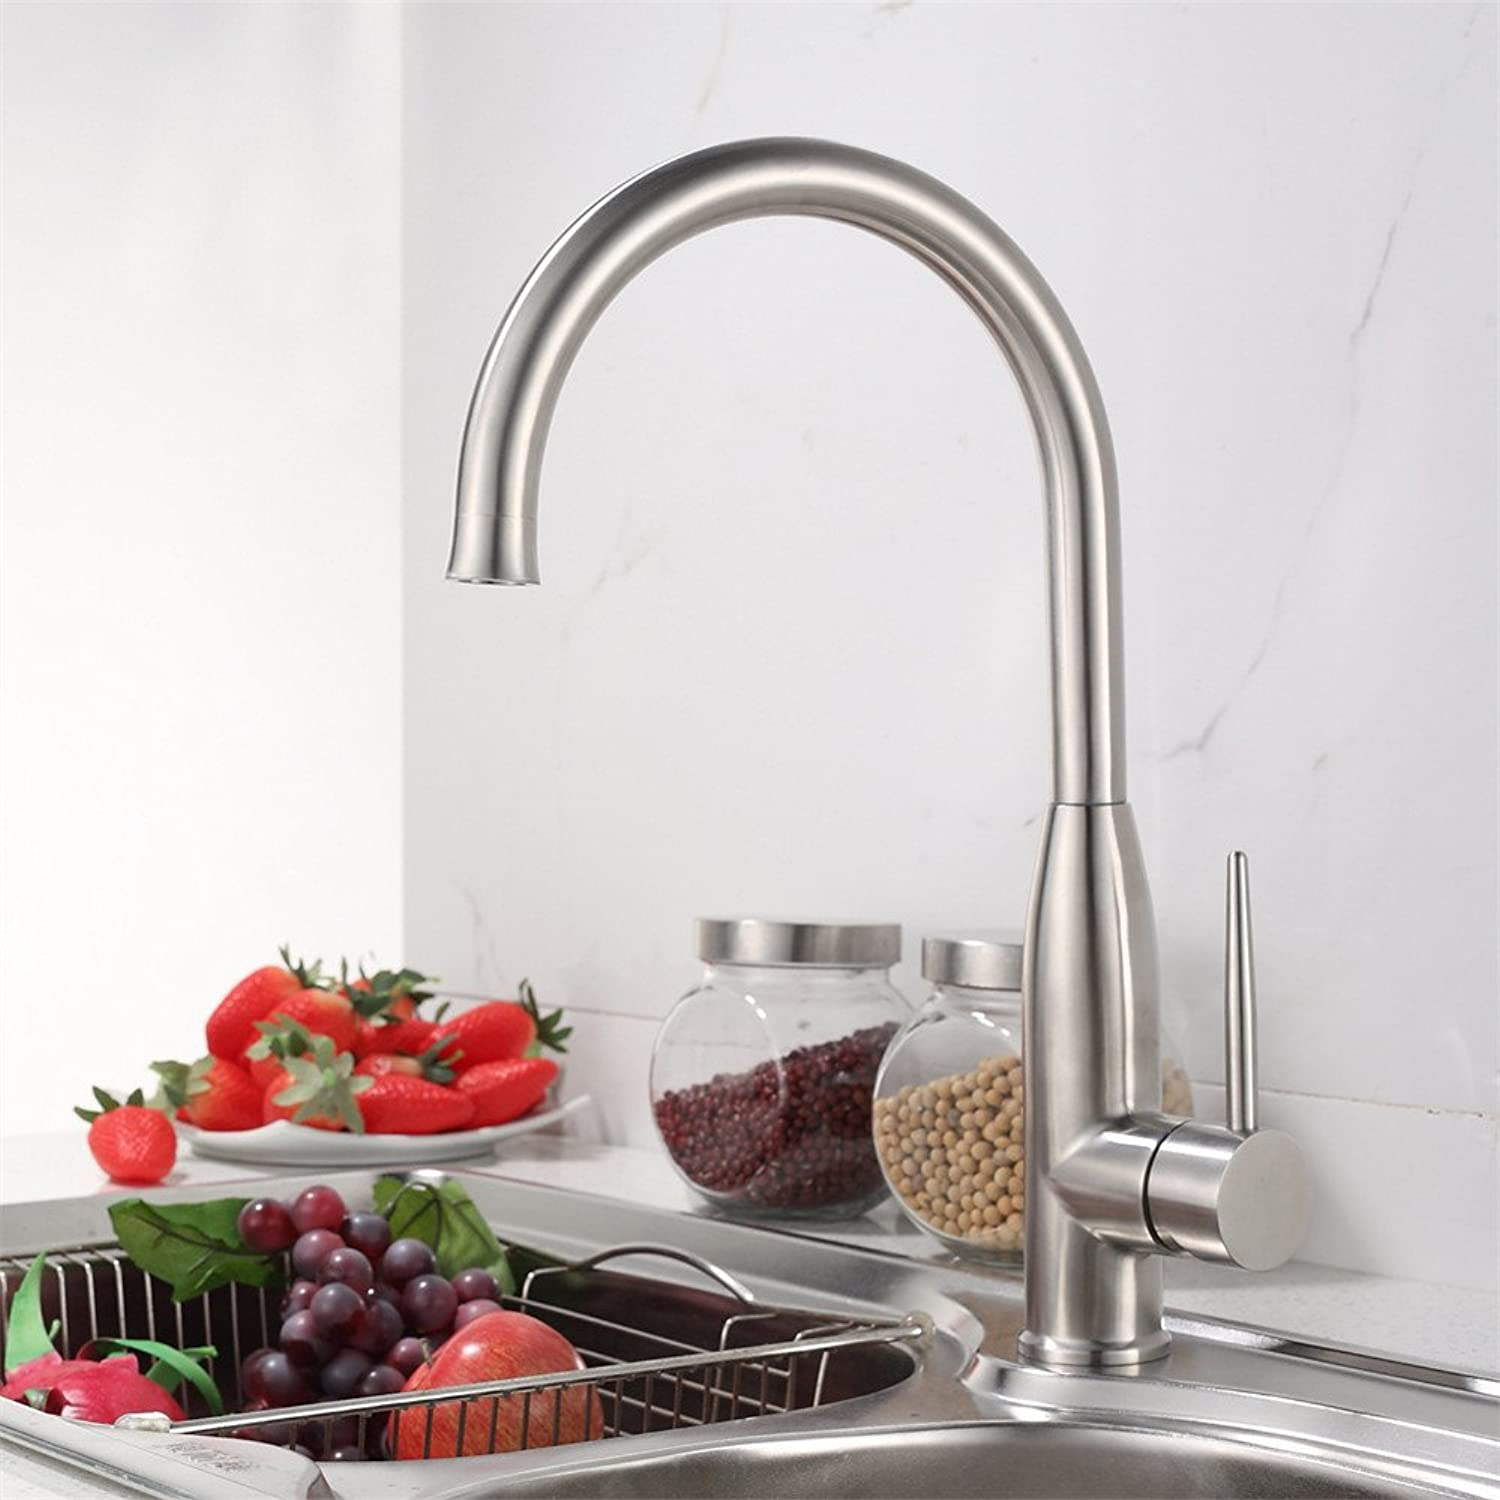 Bijjaladeva Antique Bathroom Sink Vessel Faucet Basin Mixer Tap 304 Stainless Steel kitchen sink, hot and cold redary Mixer kitchen sink brushed Faucet